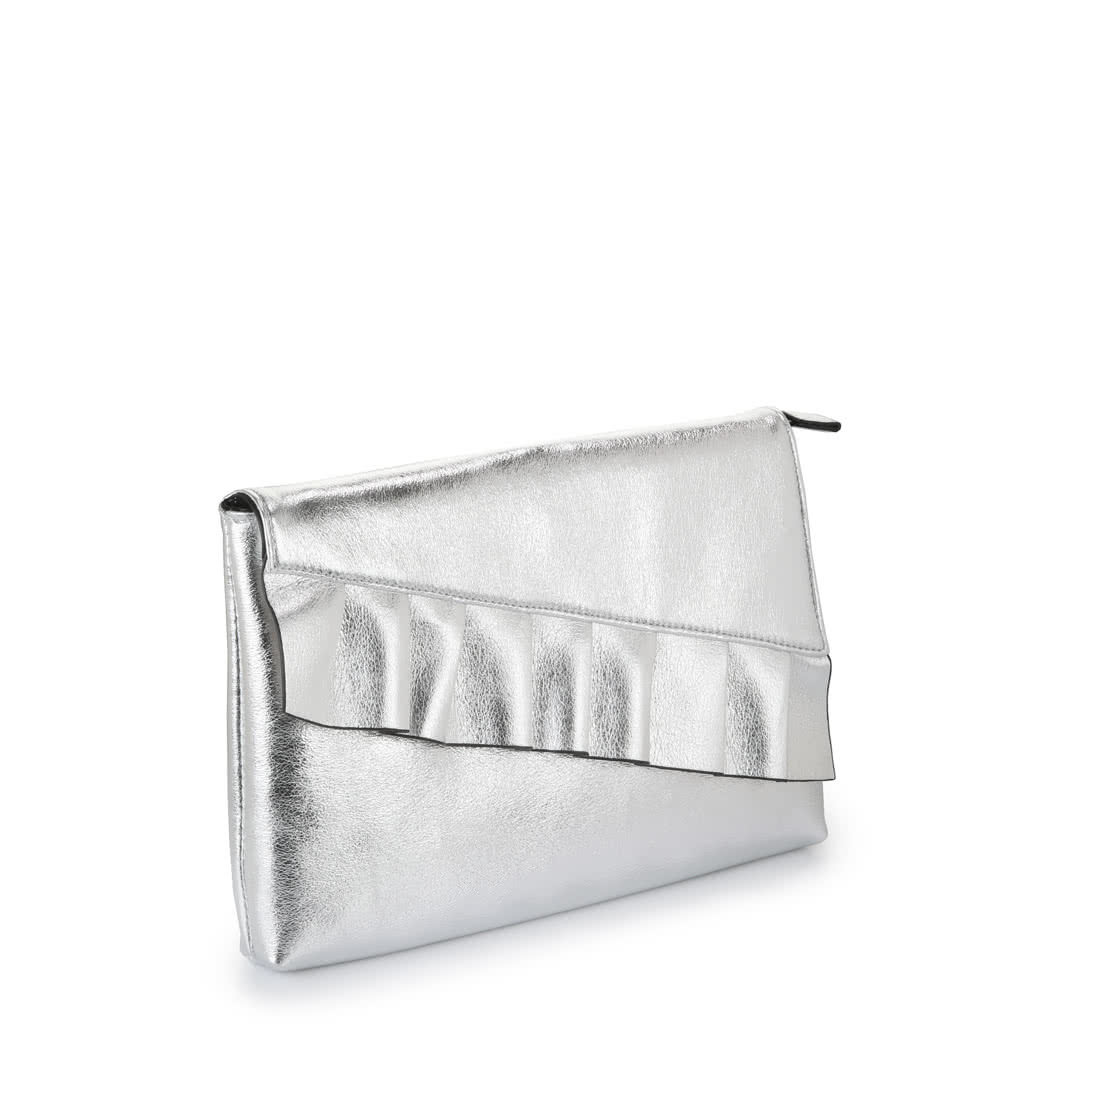 d98a331aa8 Buffalo silver clutch bag with frills buy online in BUFFALO Online ...